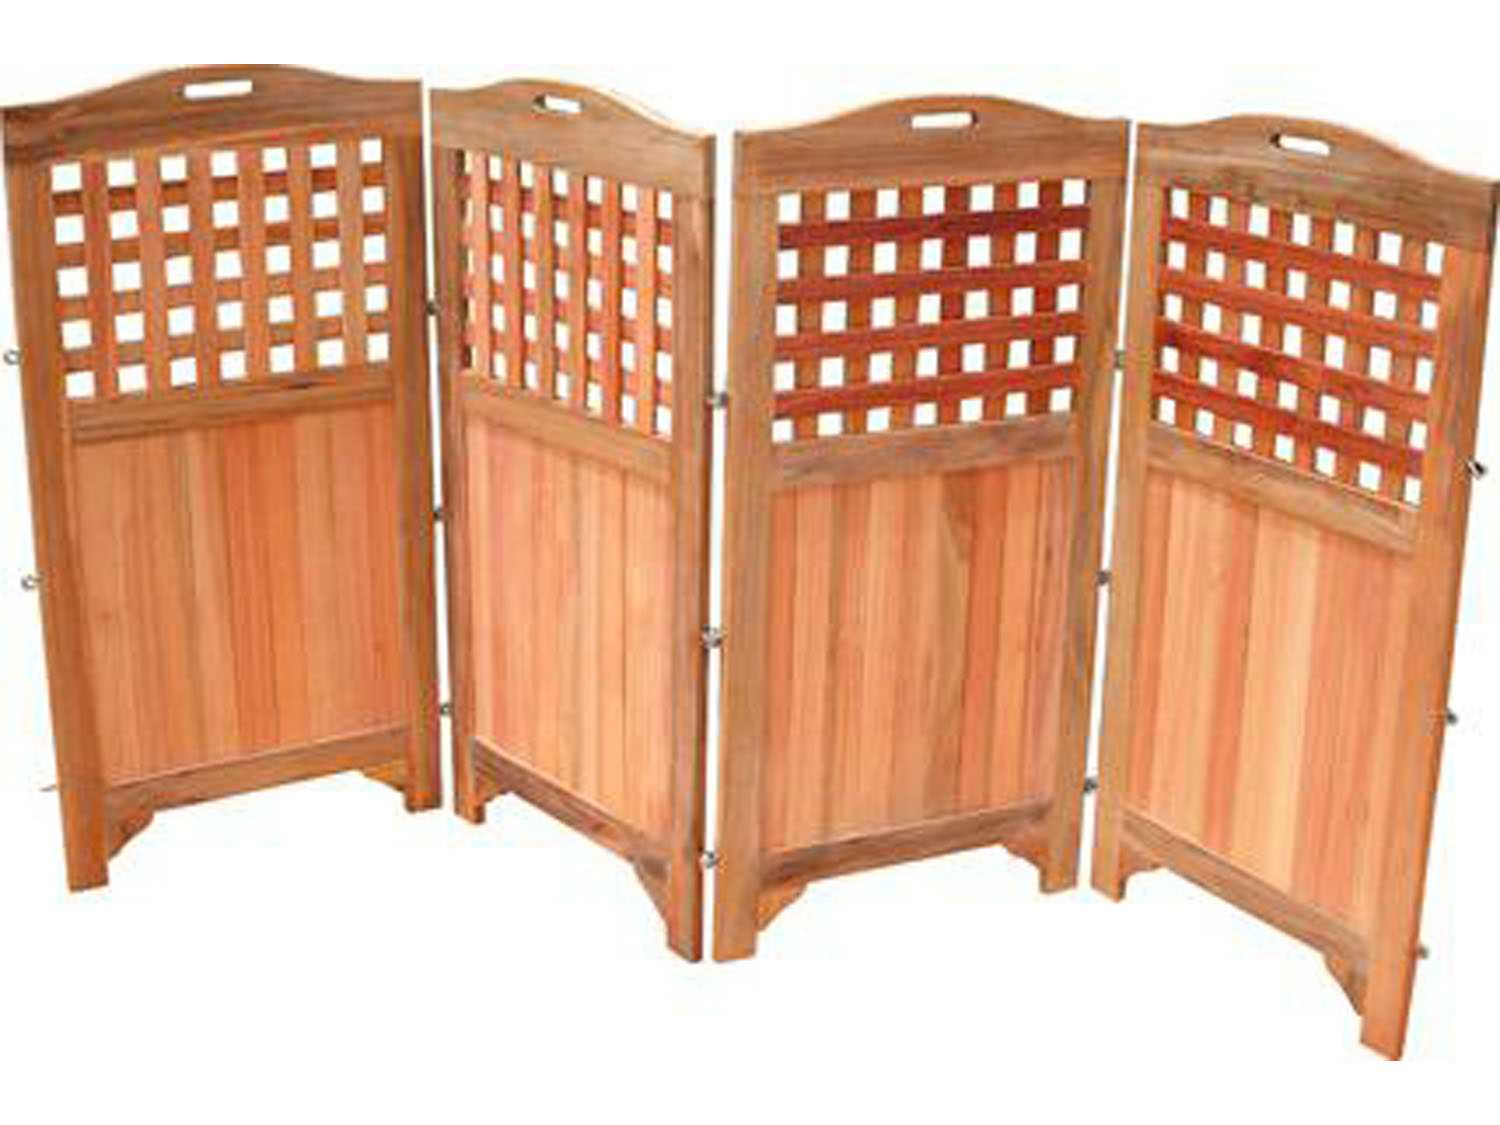 Vifah acacia wood 48 four panels privacy screen v163 for Wood patio privacy screens